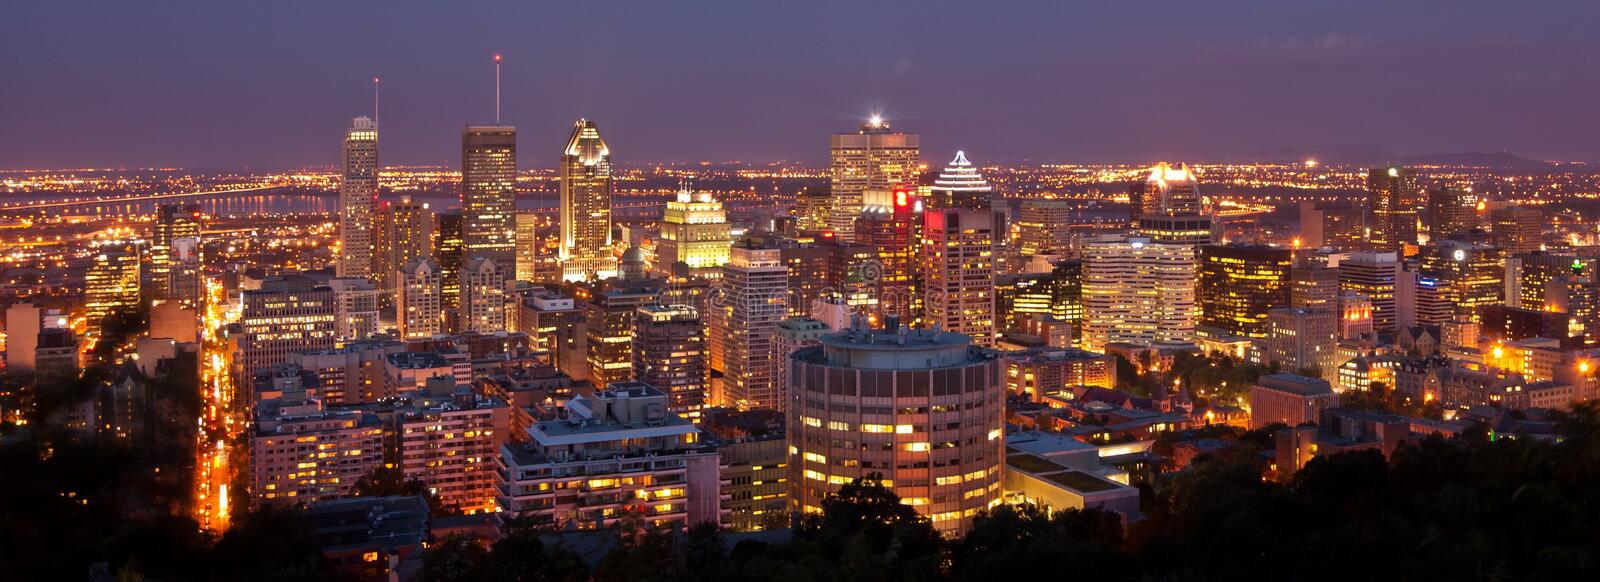 Cityscape City Lights Mont Blanc Montreal Canada royalty free stock image